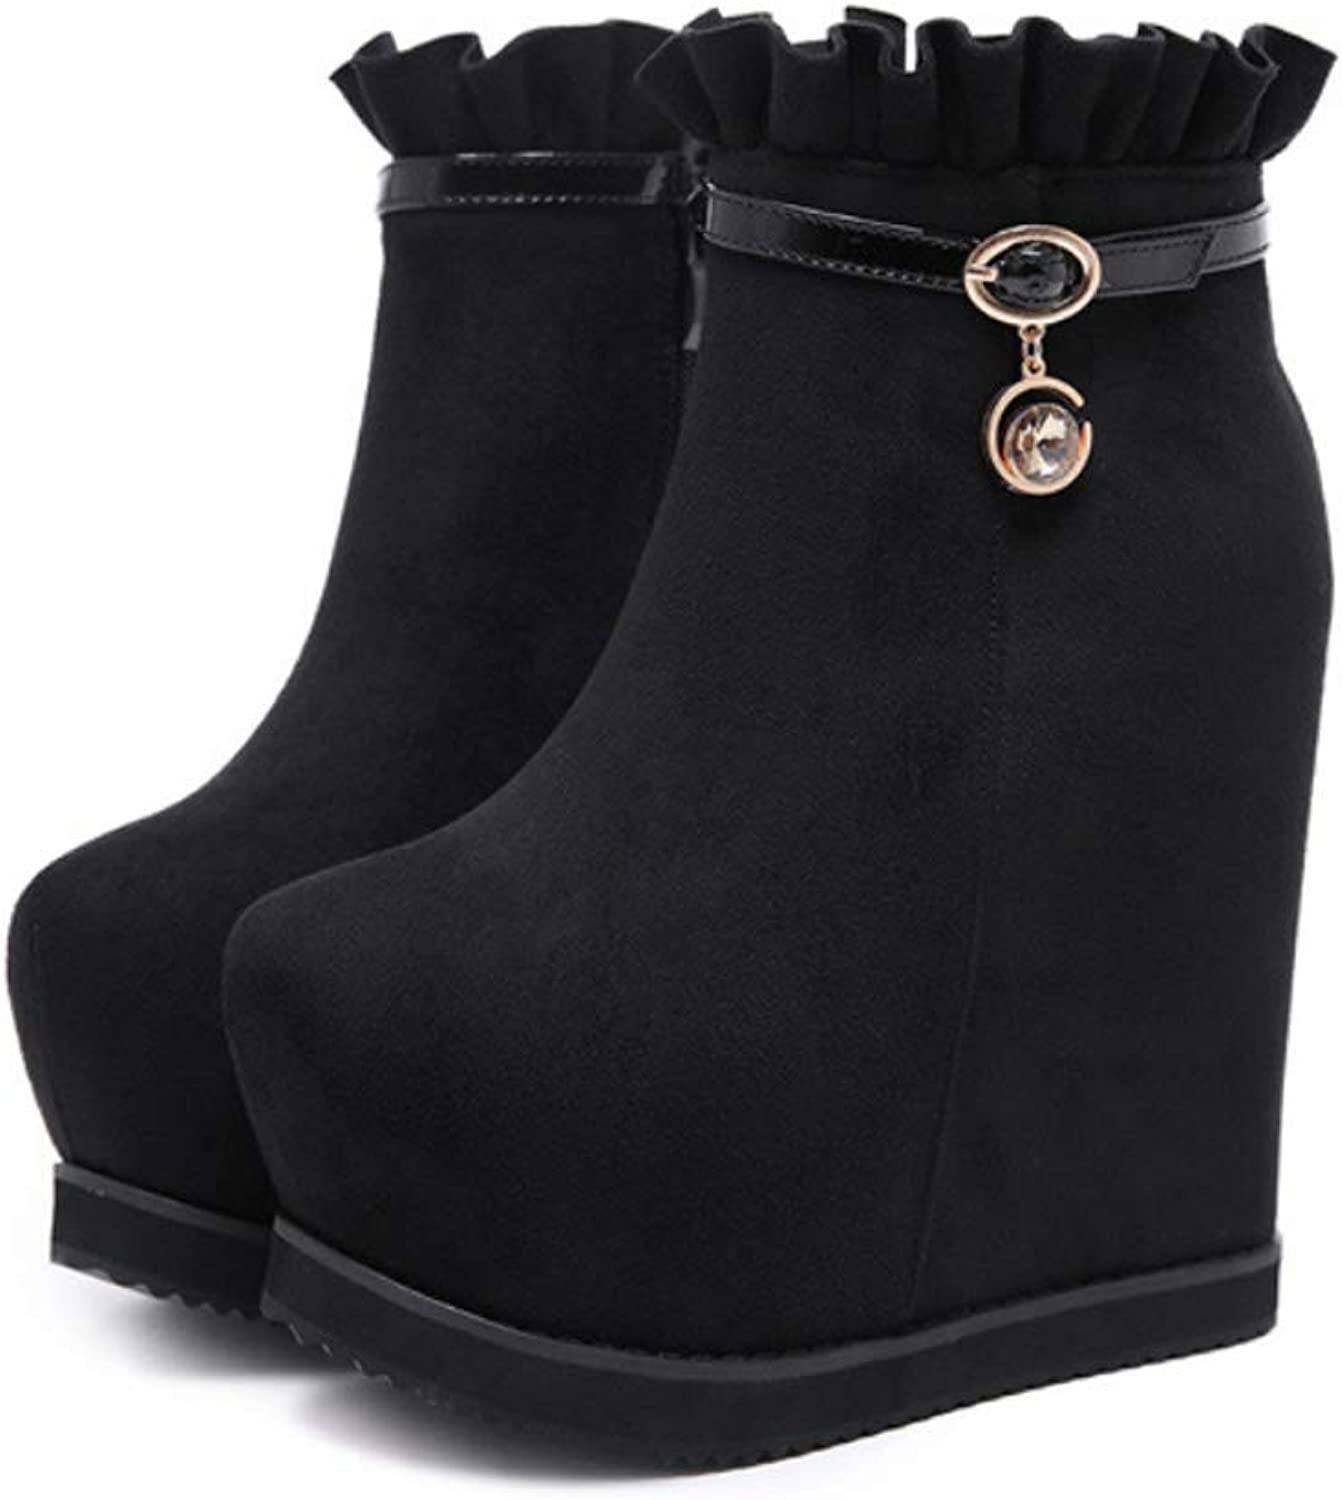 Womens Ankle Boots with Super High Heel shoes Wedge Heel Lace Buckle Booties for Fall Winter